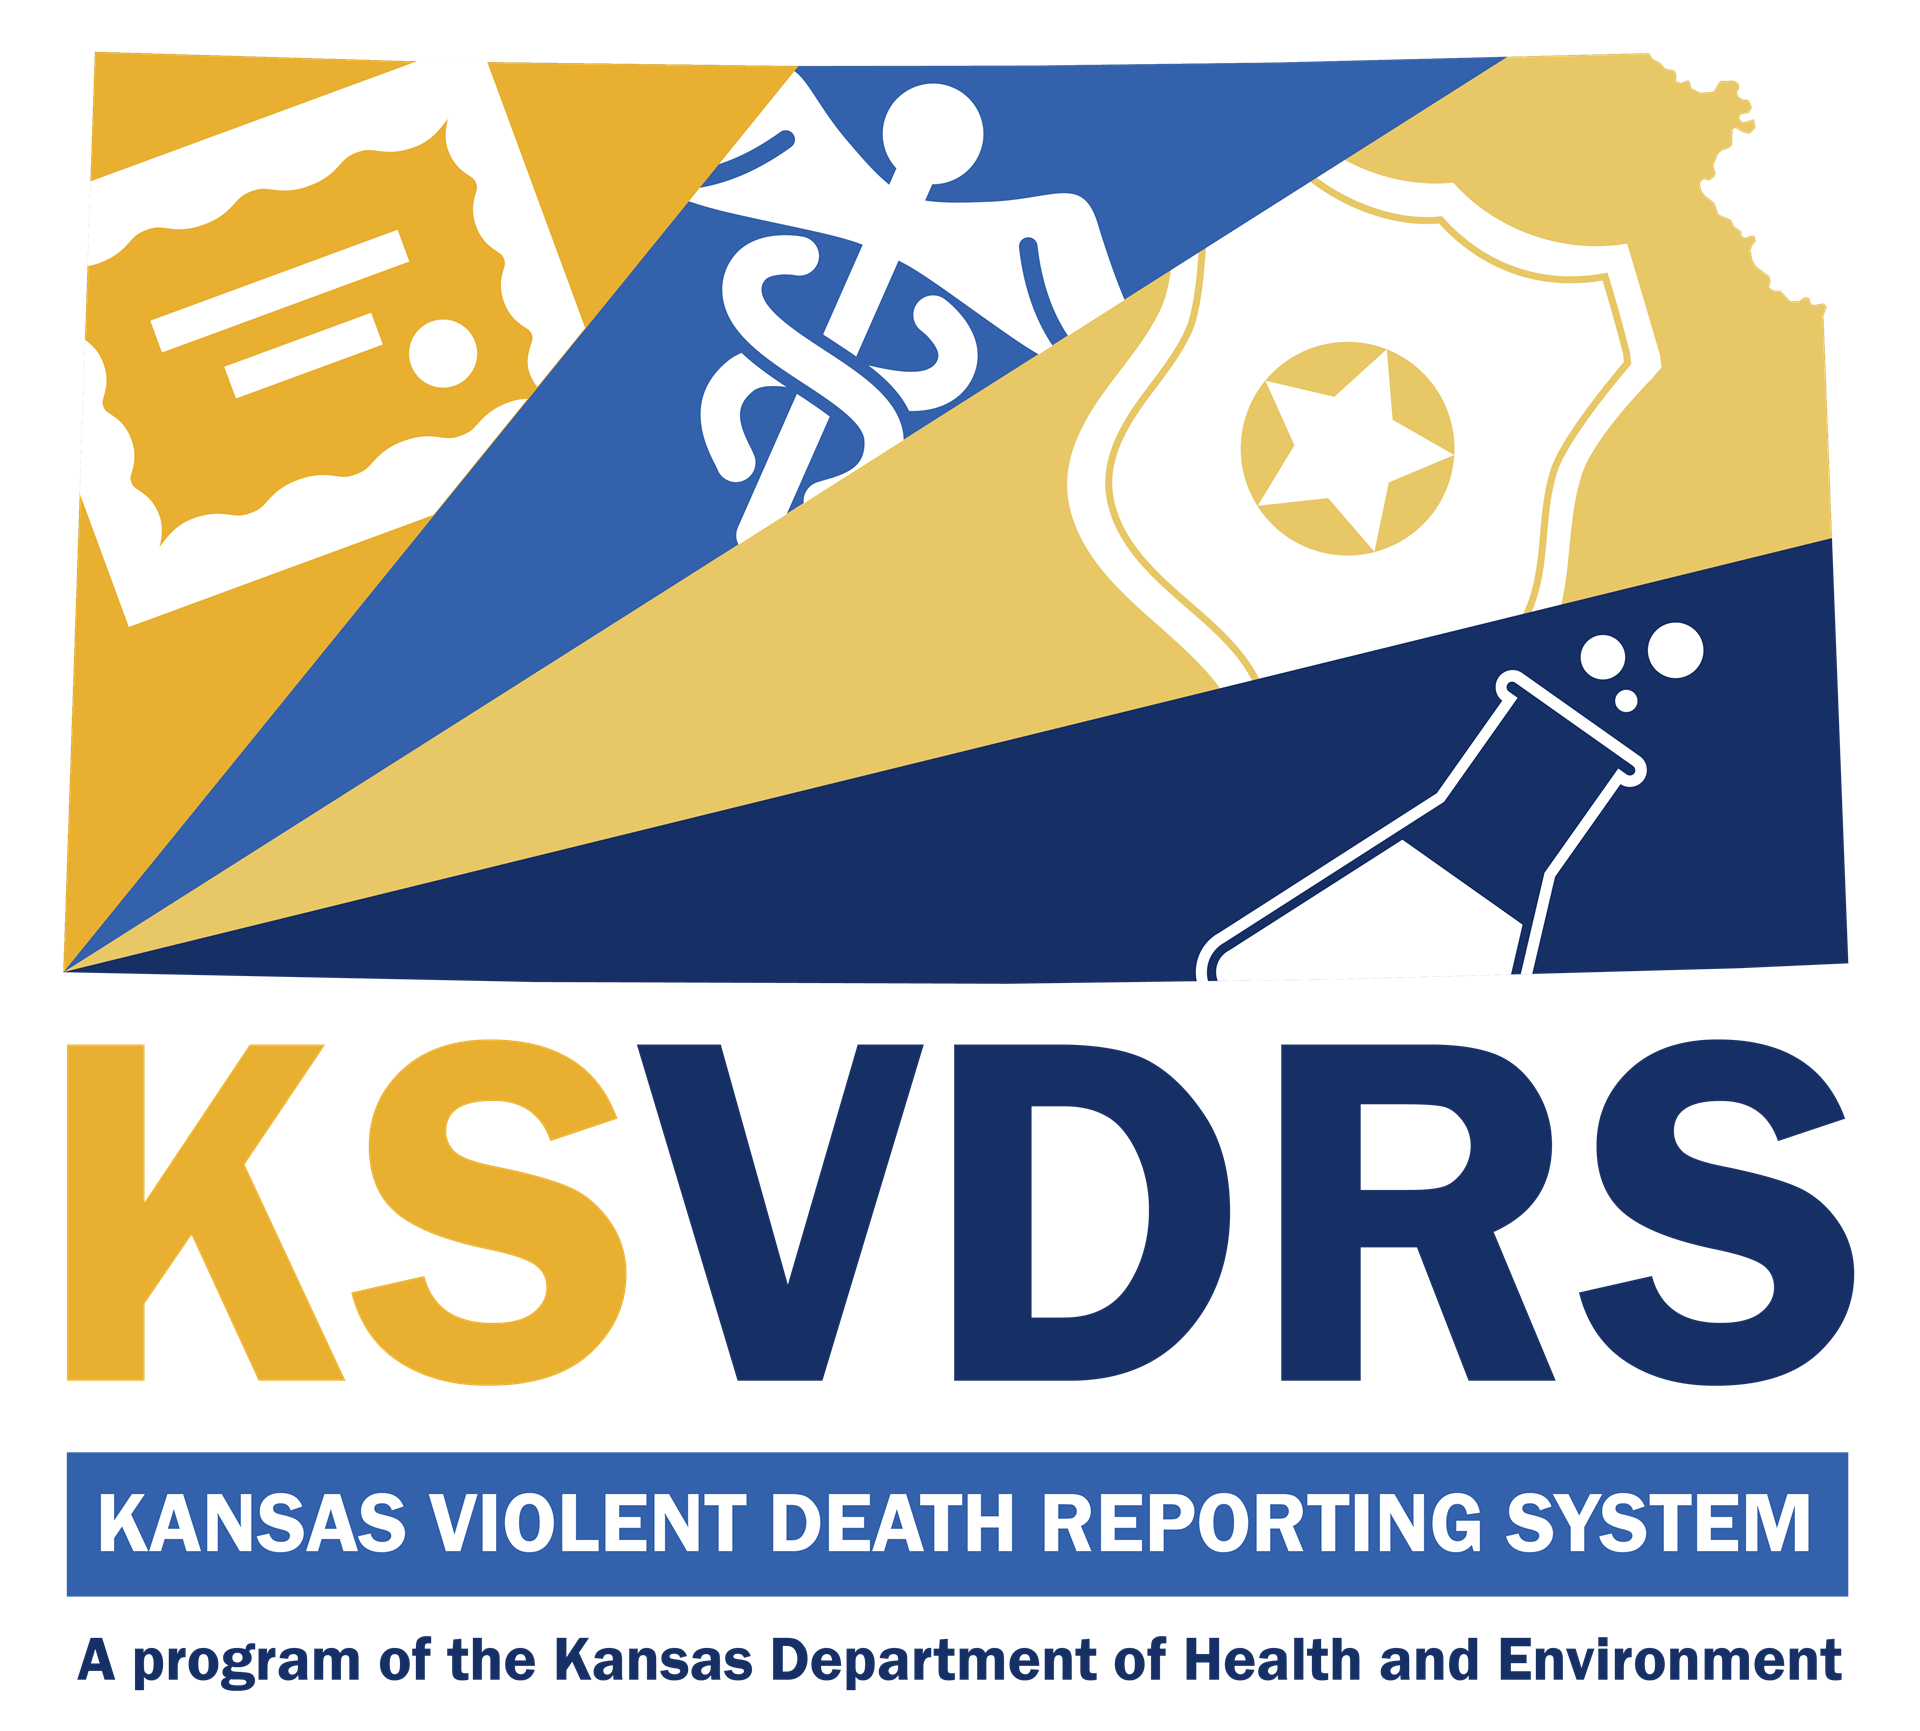 Kansas Violent Death Reporting System